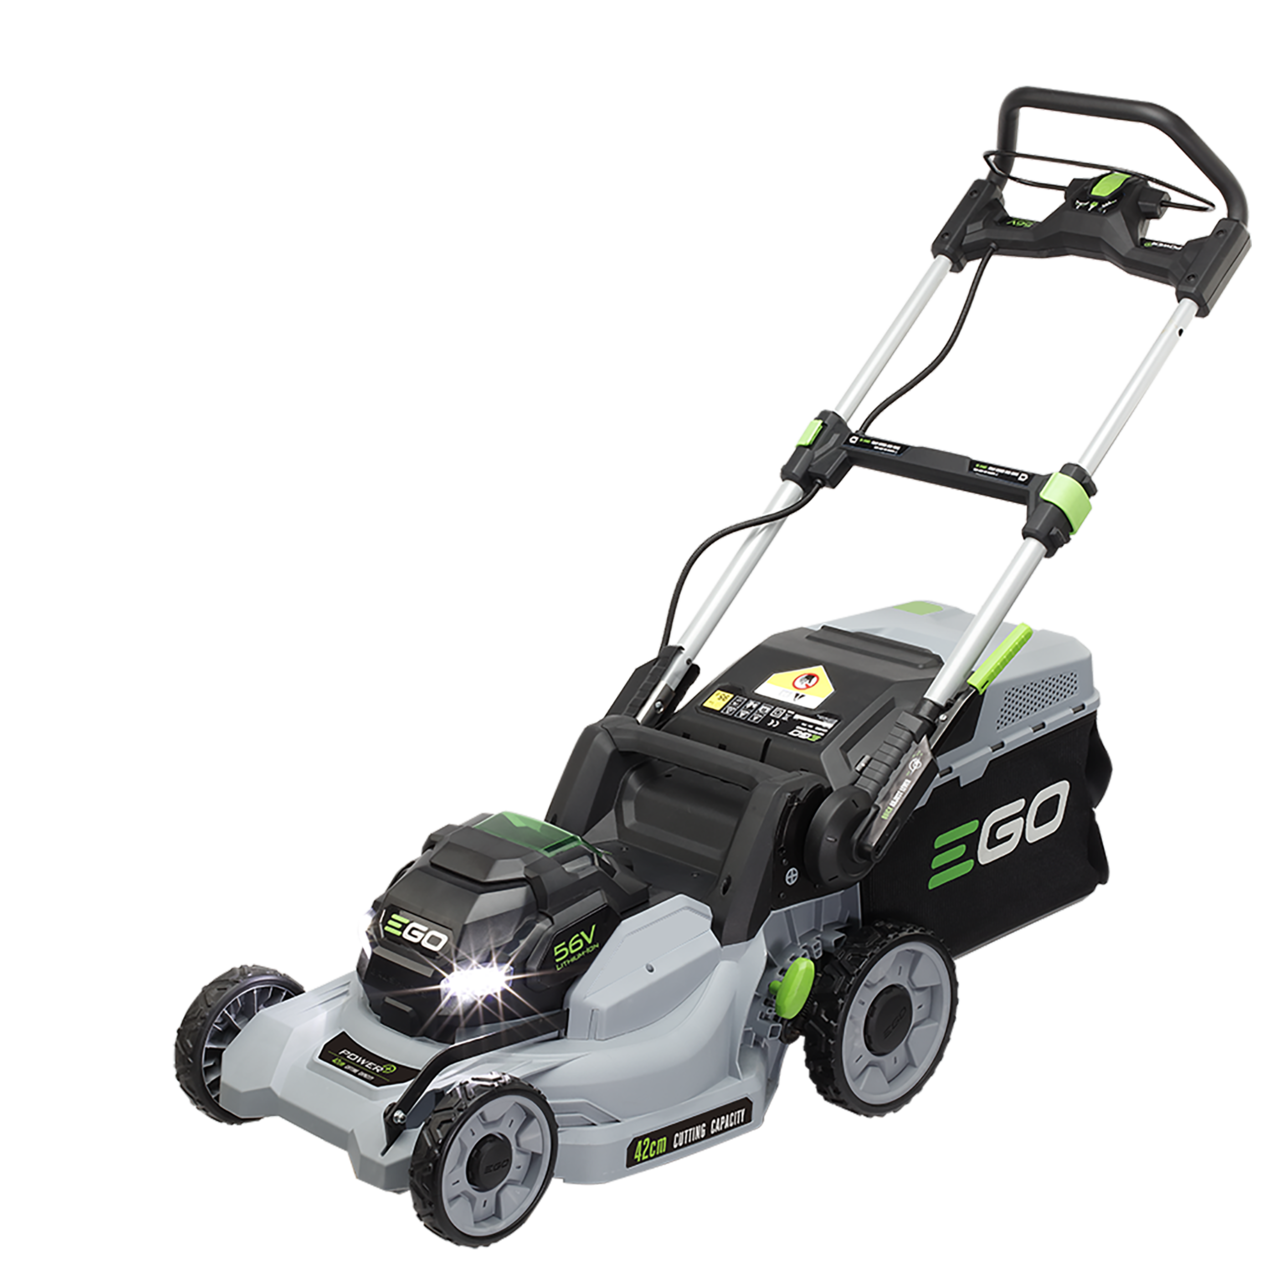 EGO LM1701E Cordless Mower Includes 2.5AH Battery And Standard Charger